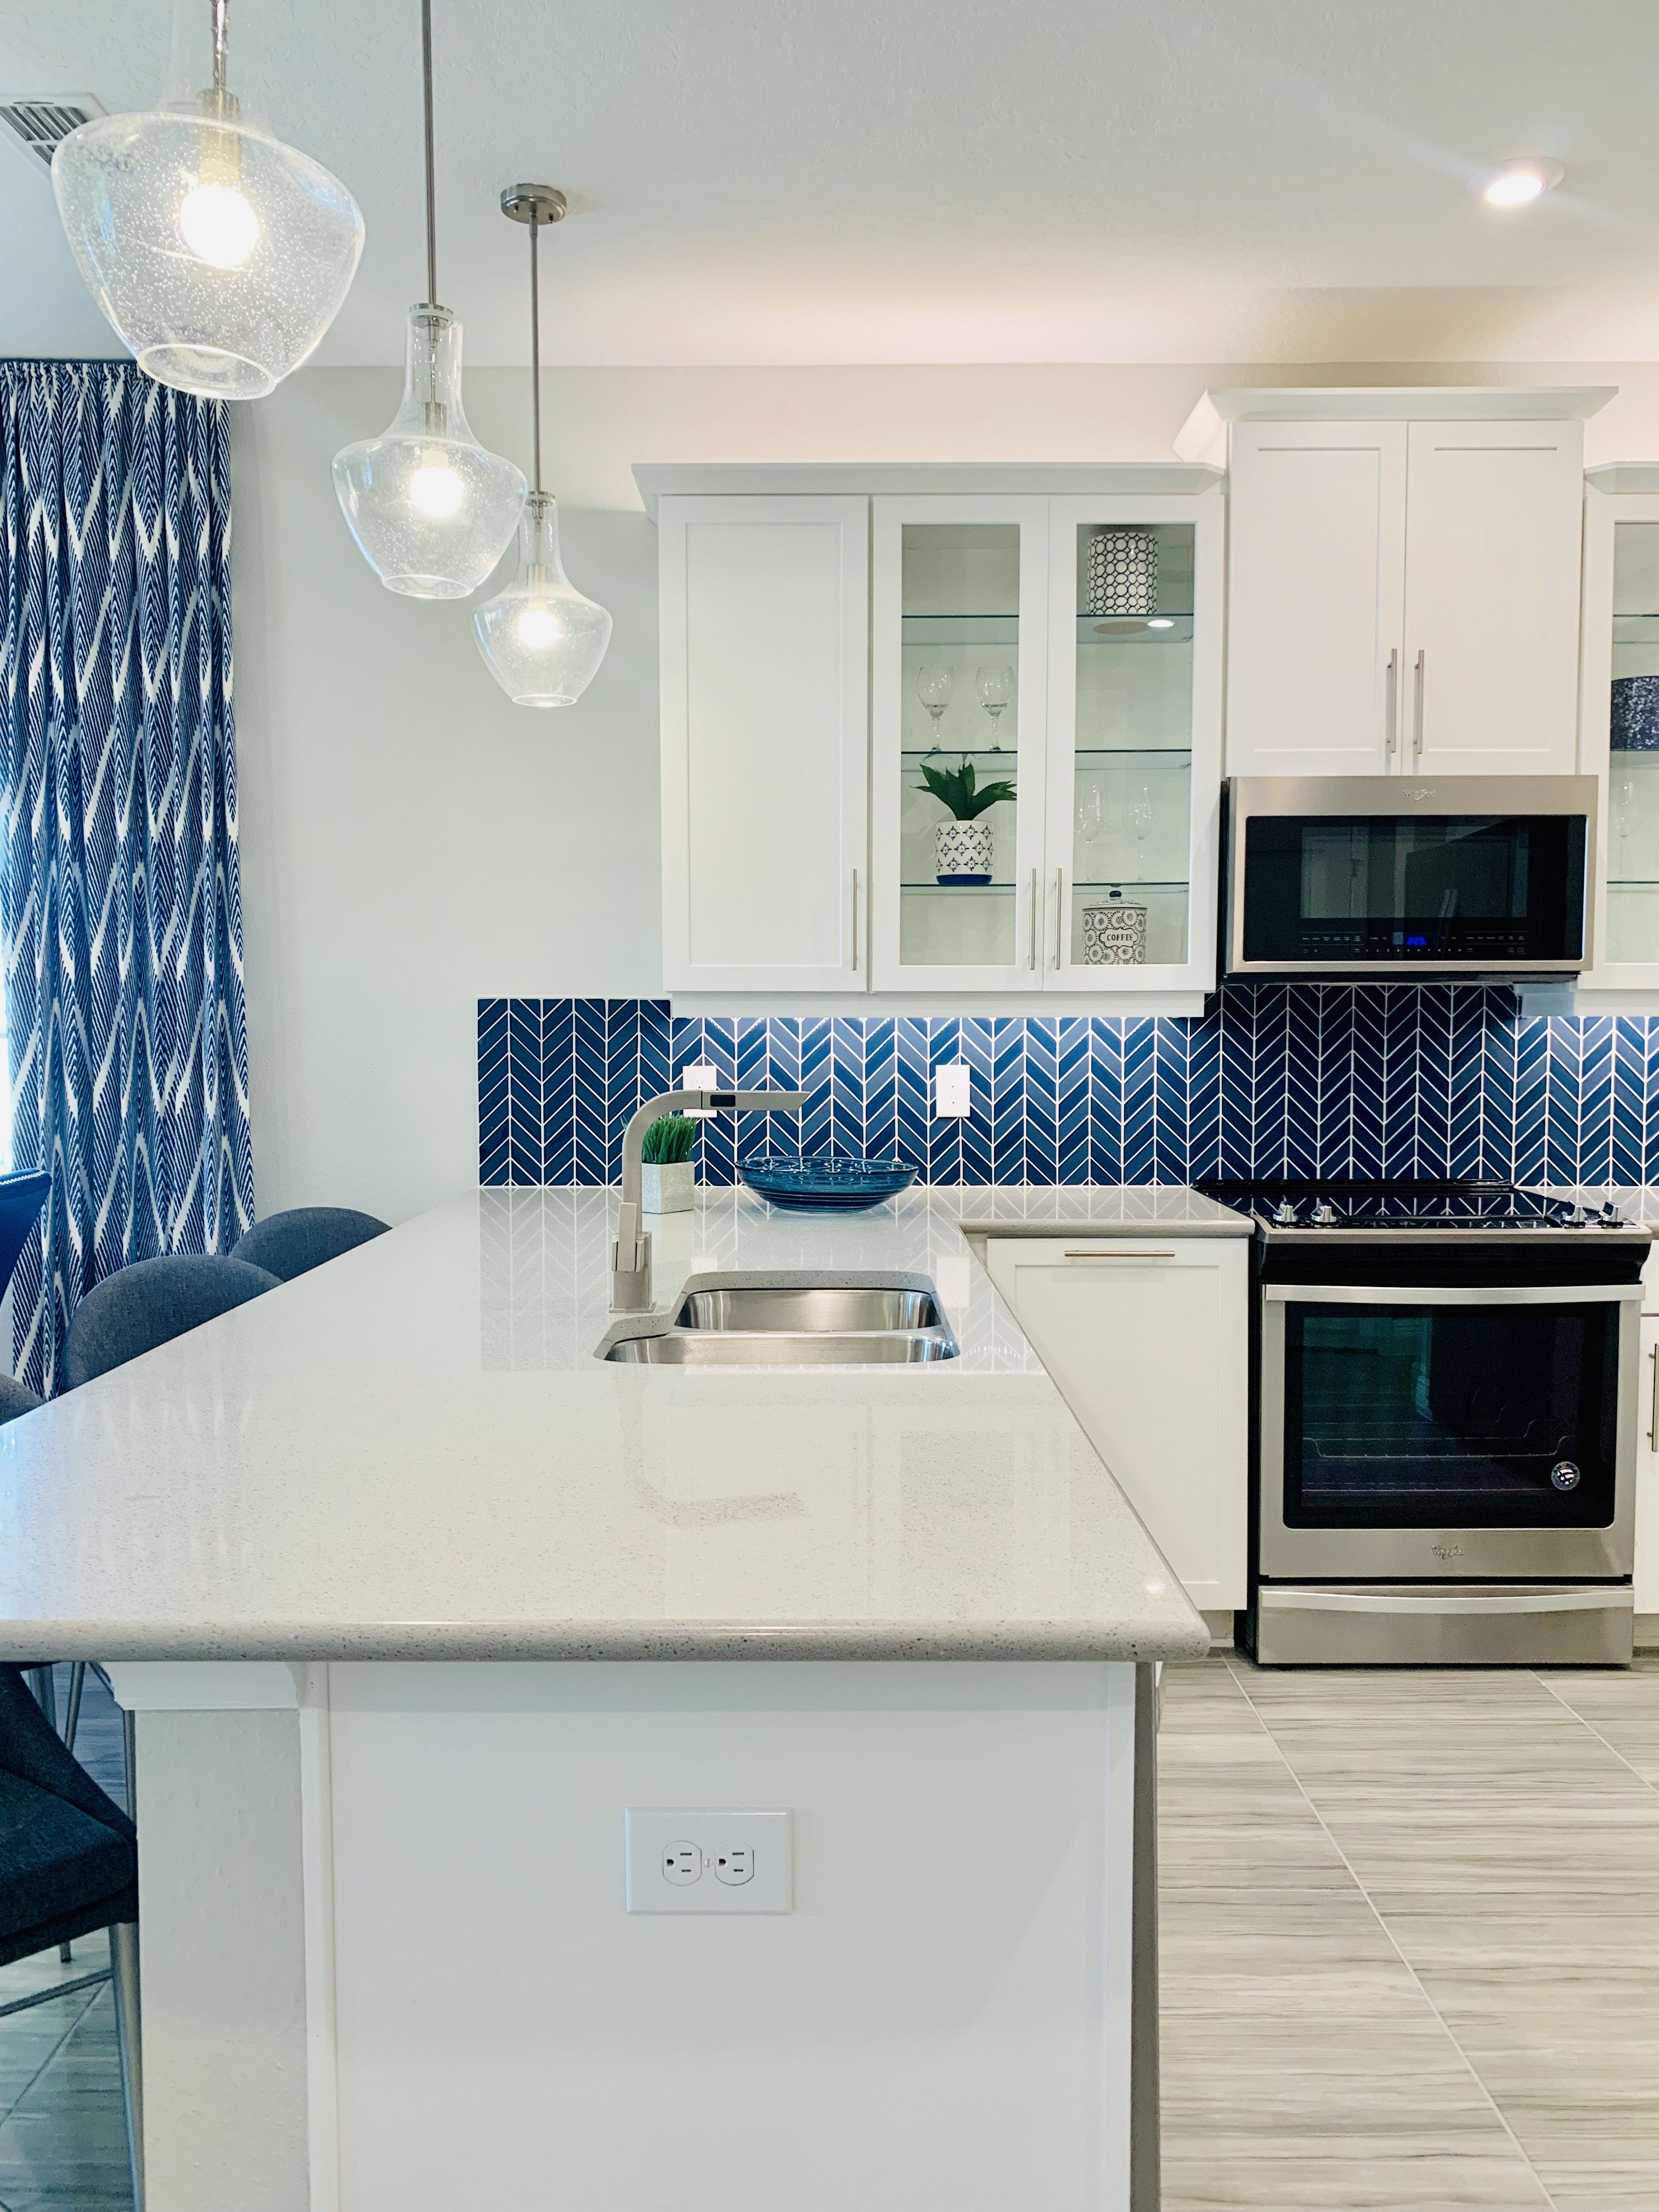 Blue Decor Design can be executed in a few easy steps.  In this open concept town home they added window treatments, blue tiles in the kitchen, blue accent wall and blue decor details in the dining room. #BlueDecor #DesignIdeas